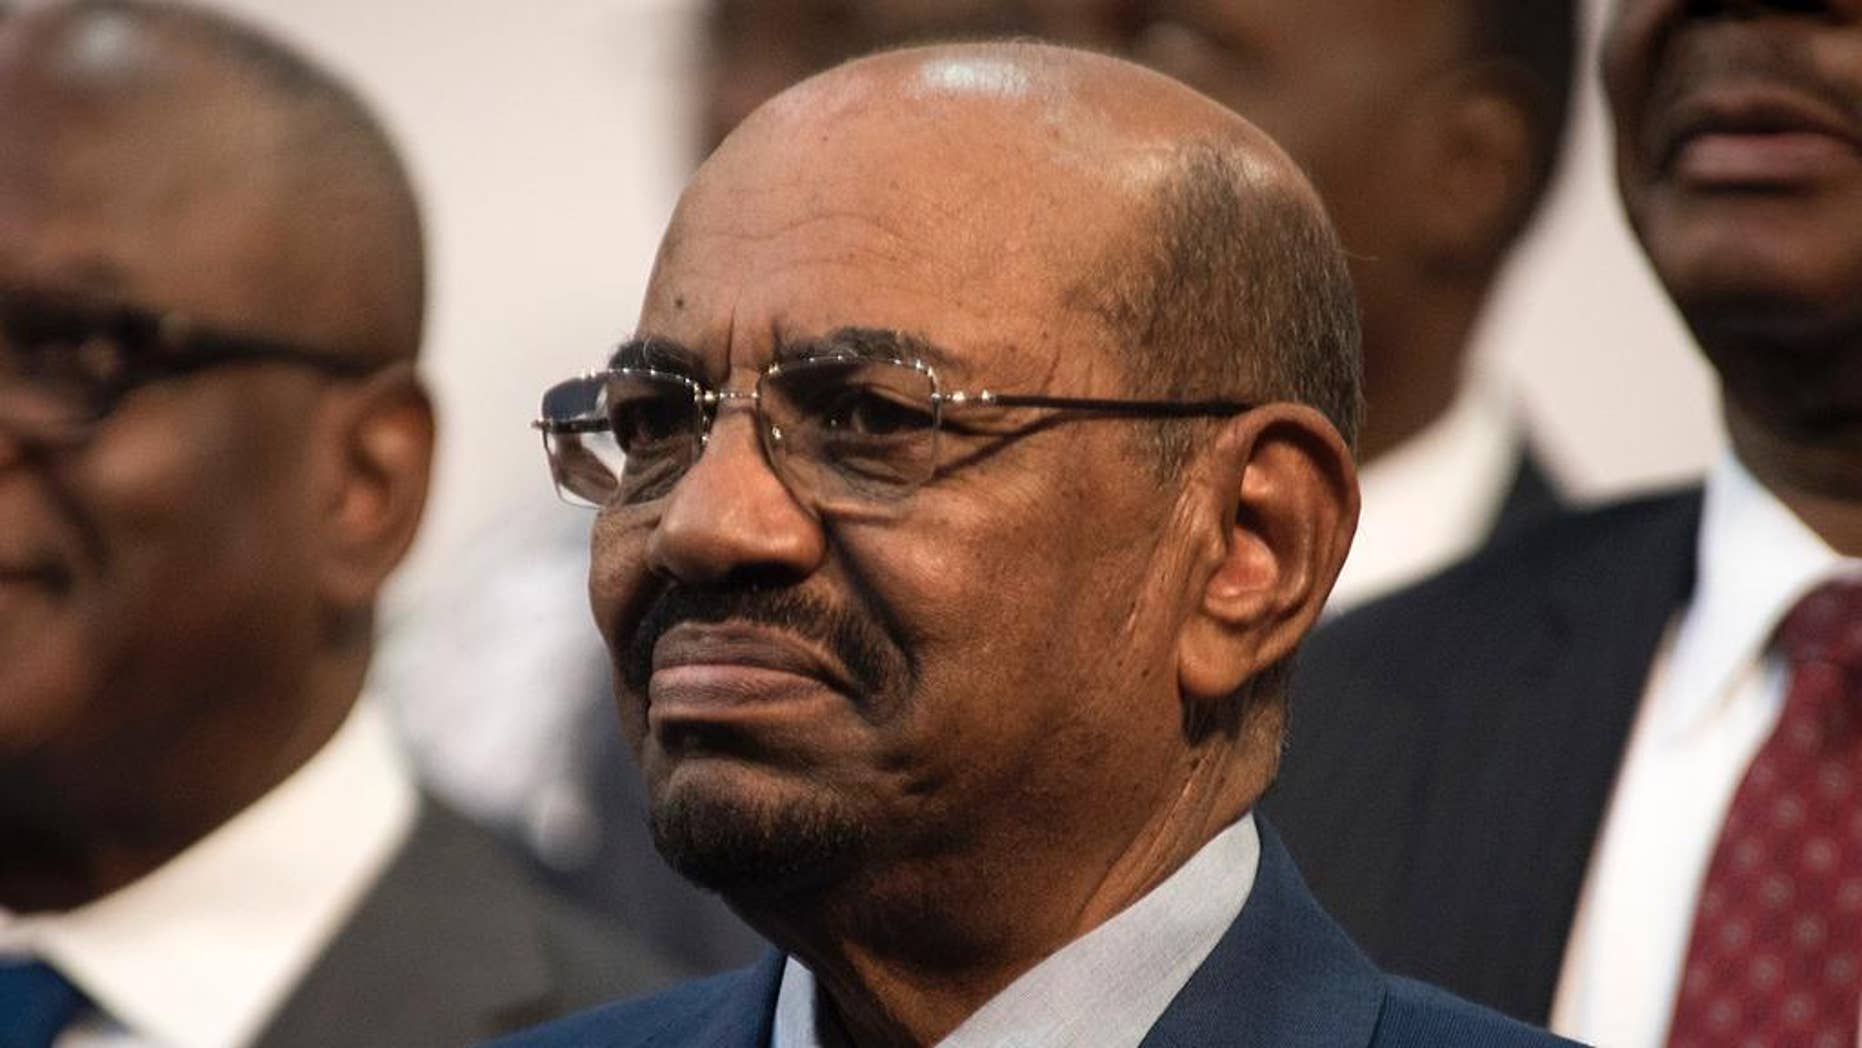 FILE - In this June 14, 2015 file photo, Sudanese President Omar al-Bashir attends the opening session of the AU summit in Johannesburg, South Africa. During an extensive interview Sunday, Feb. 5, 2017, with the Saudi-owned Al-Arabiya TV network, Al-Bashir accused Egyptian intelligence of supporting Sudan's opposition forces, and vowing to take a border dispute between the two neighbors to the United Nations Security Council if negotiations fail. (AP Photo/Shiraaz Mohamed, File)